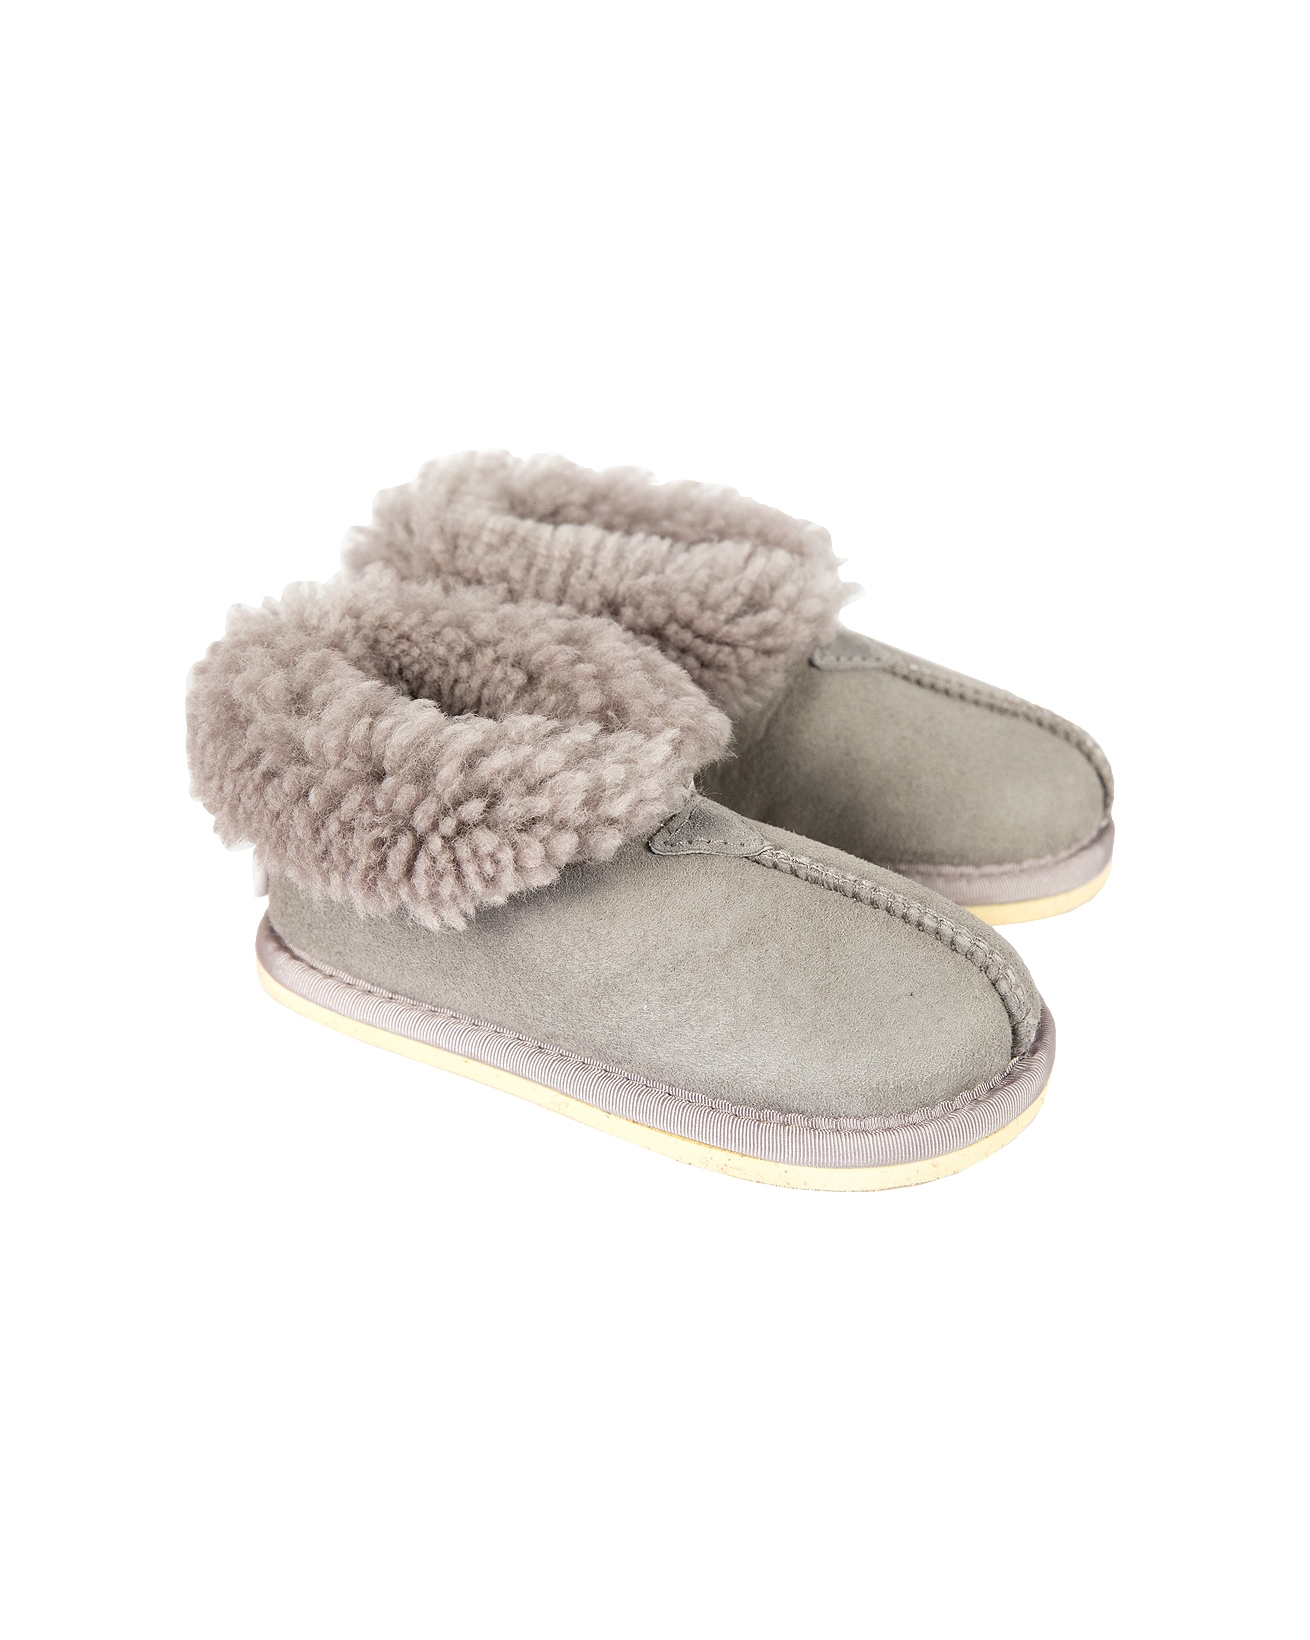 Kids Bootee Slippers - Size 11-12 - Light Grey - 1313